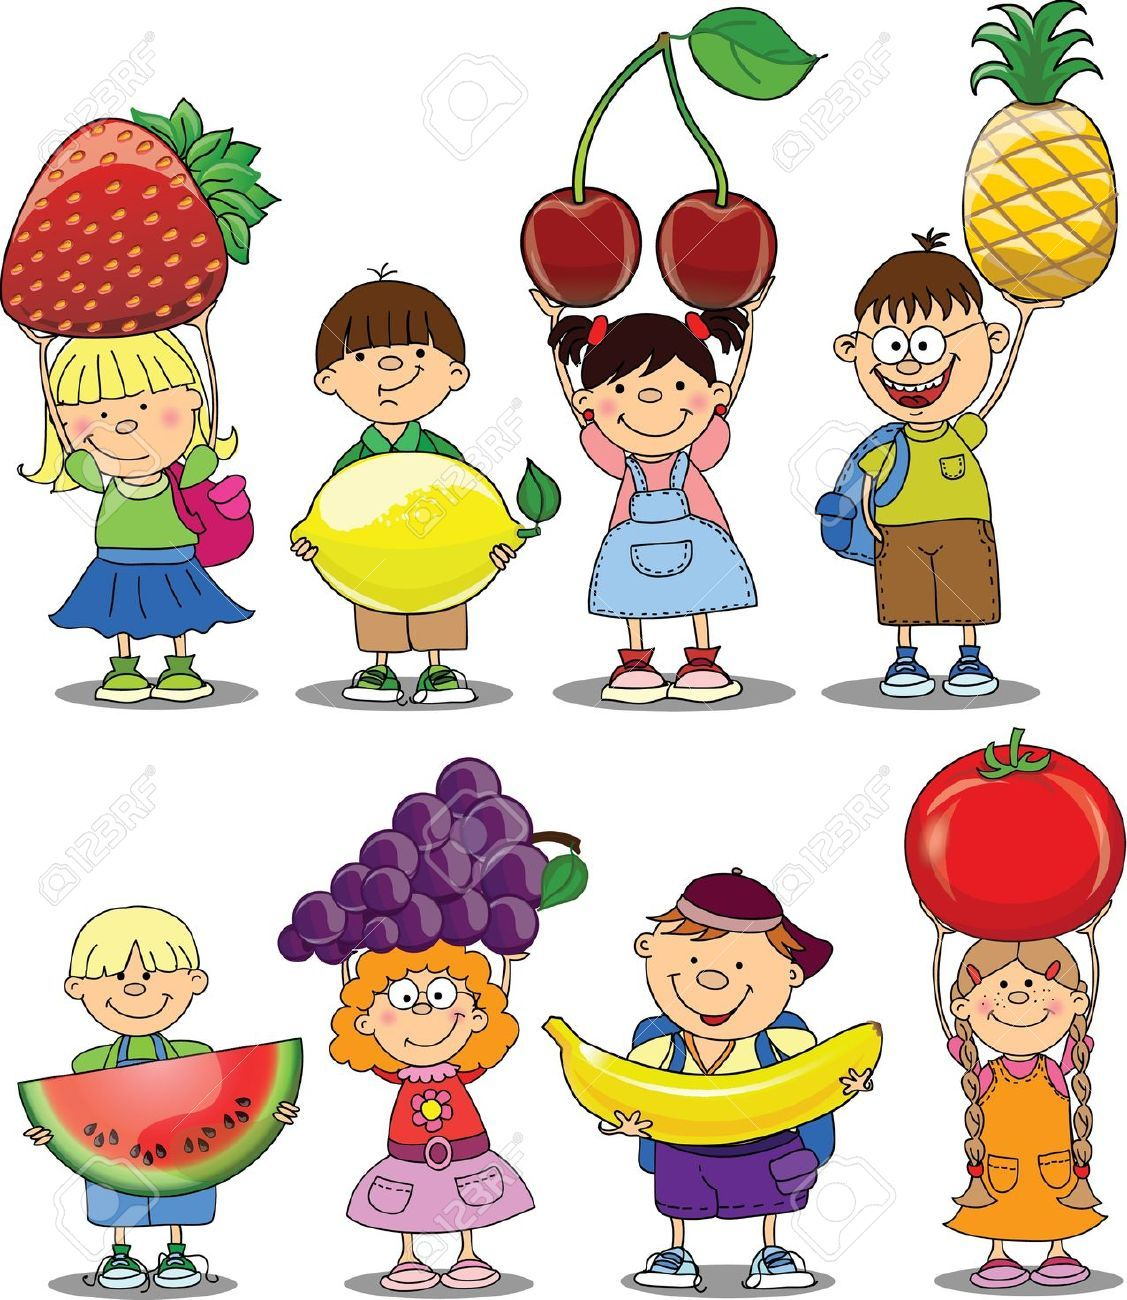 cartoon fruit and vegetable images cartoon vegetables vector